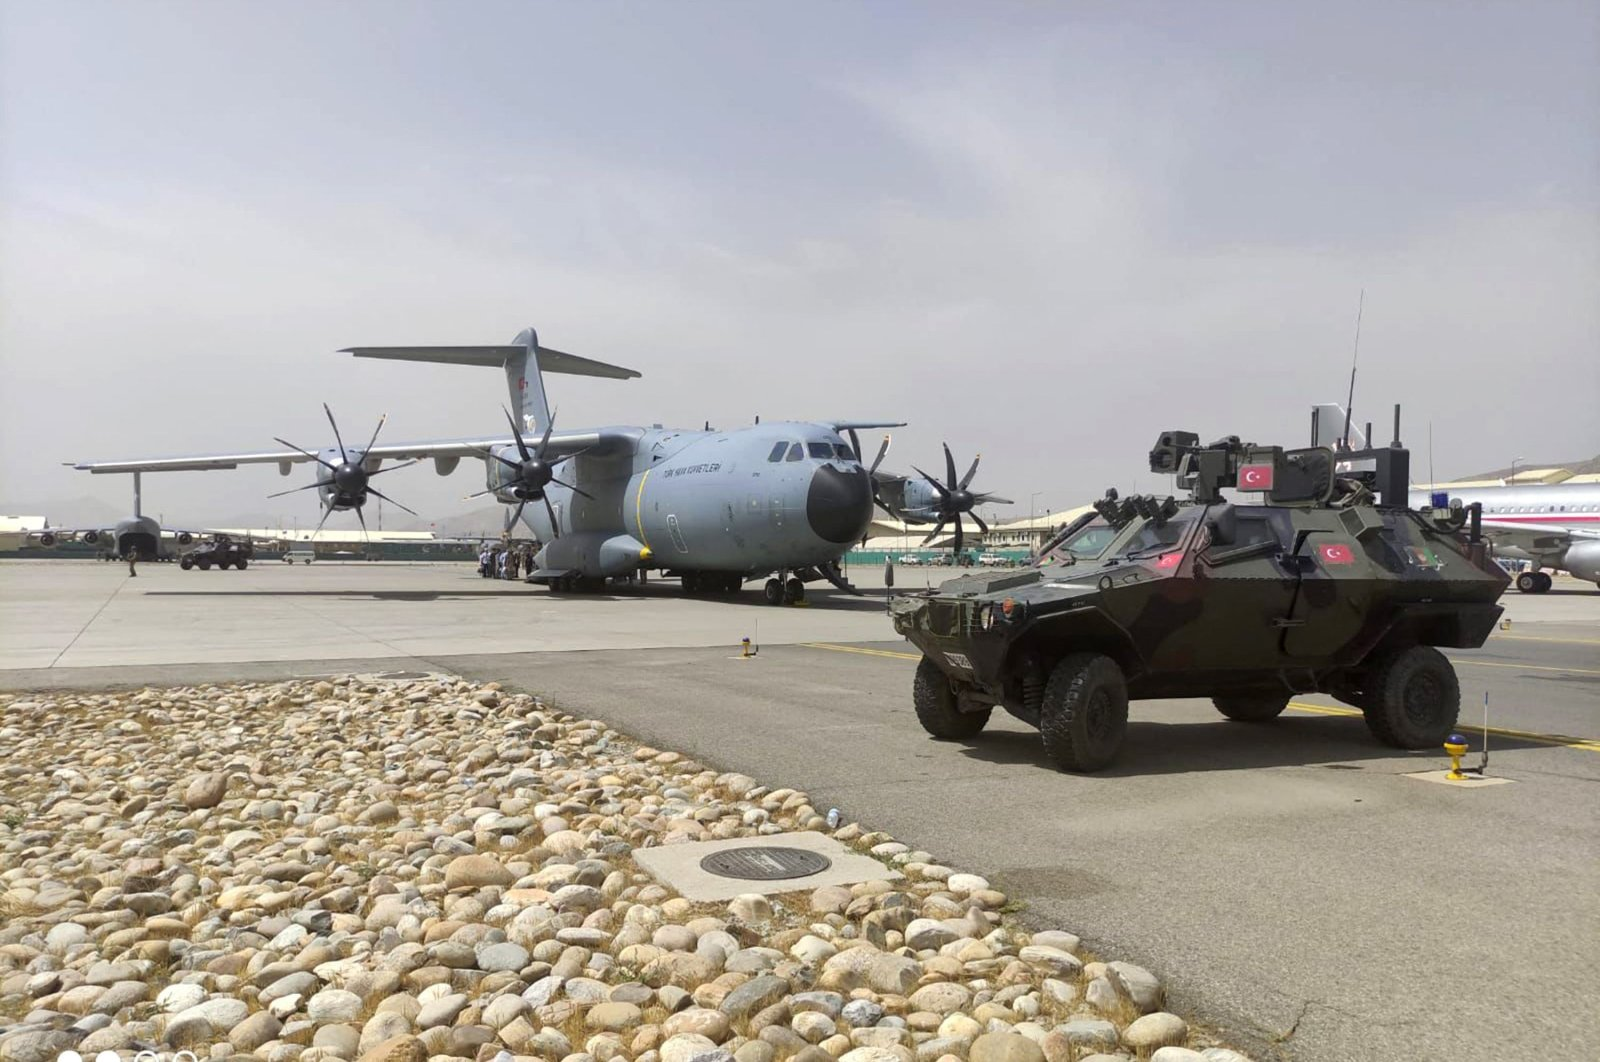 An A400 M type transport aircraft of the Turkish Air Forces during the evacuation of Turkish citizens at Kabul Hamid Karzai International Airport, Afghanistan, Aug. 18, 2021. (Turkish Defence Ministery via AFP)